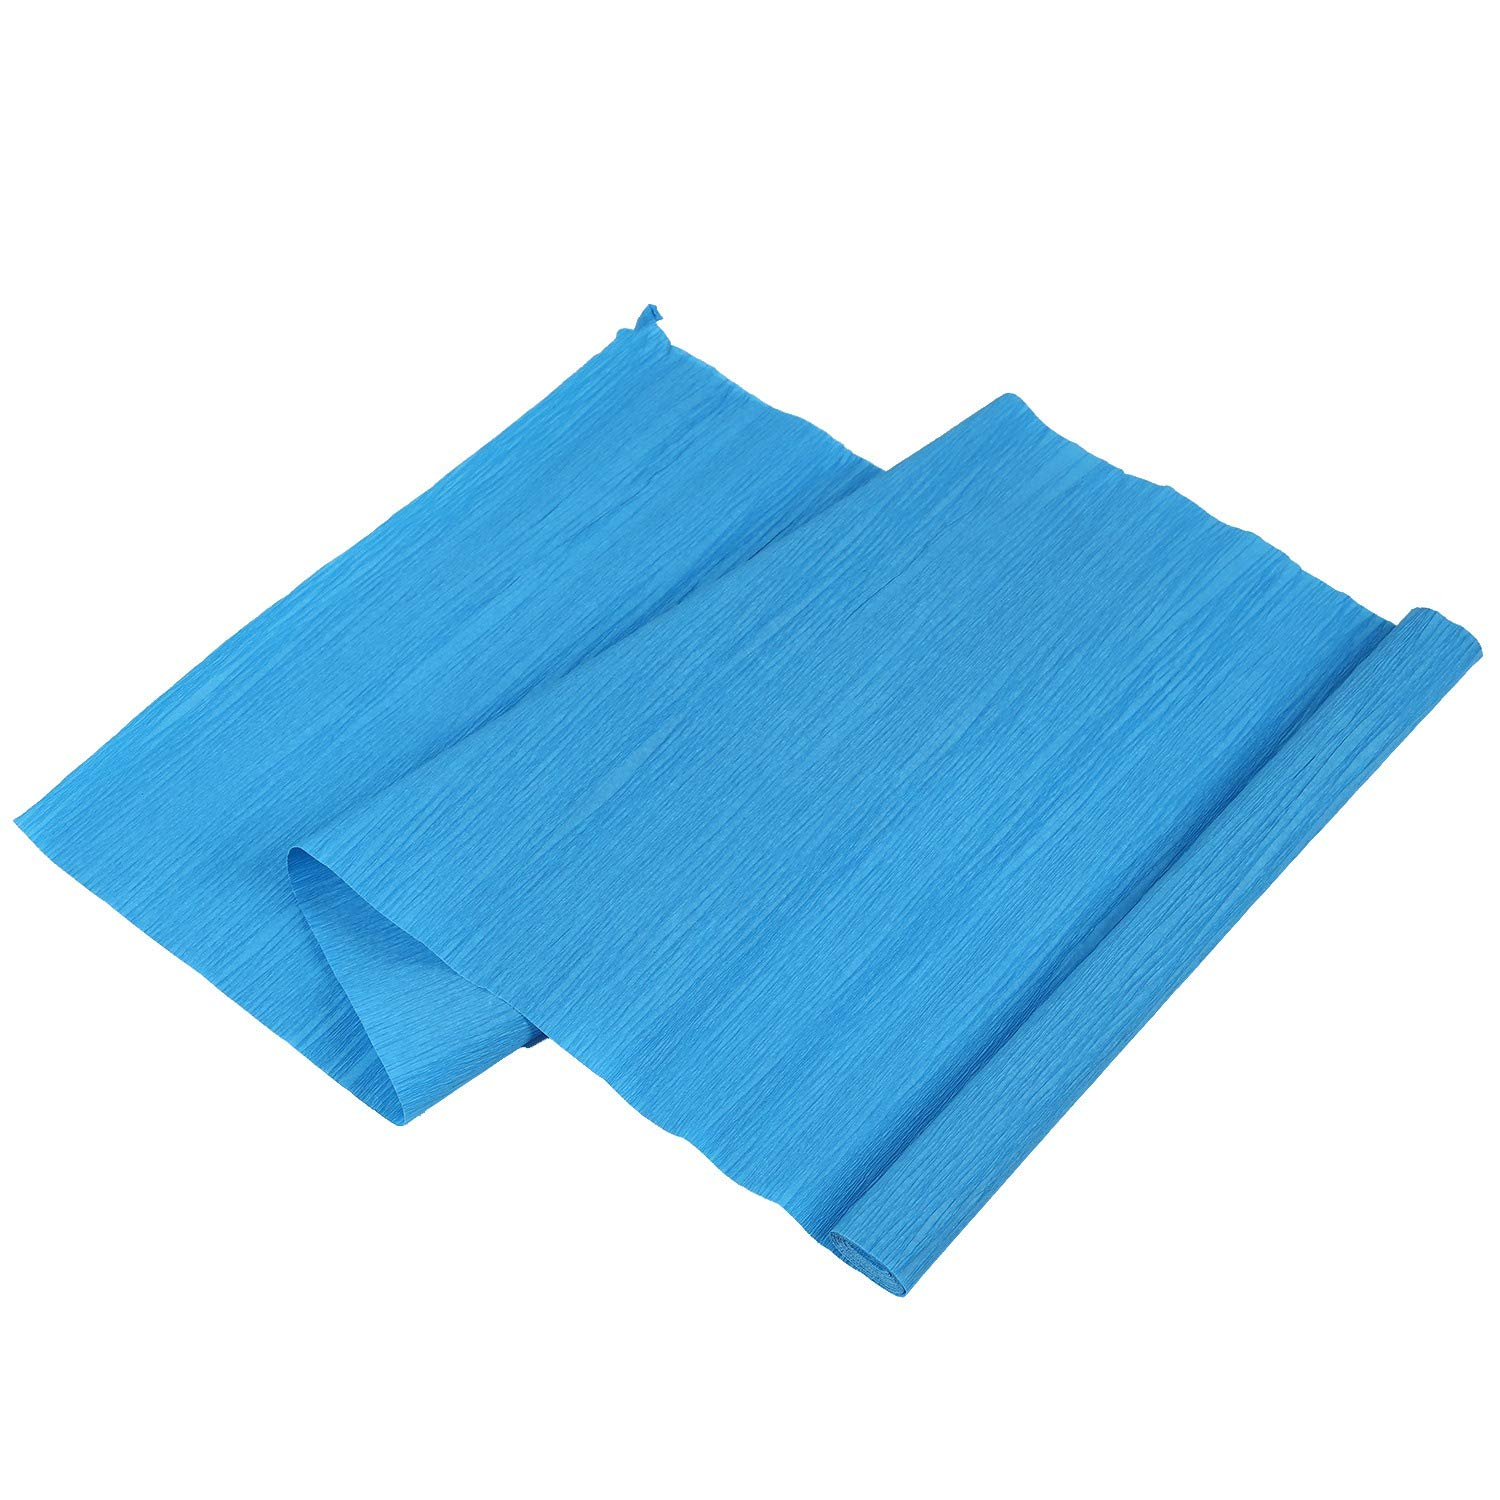 R 1 Roll DIY Flower Packing Crepe Papers Handmade Materials Crinkled Paper for Birthday Wedding Party Decoration 25050cmm(blue) SODIAL